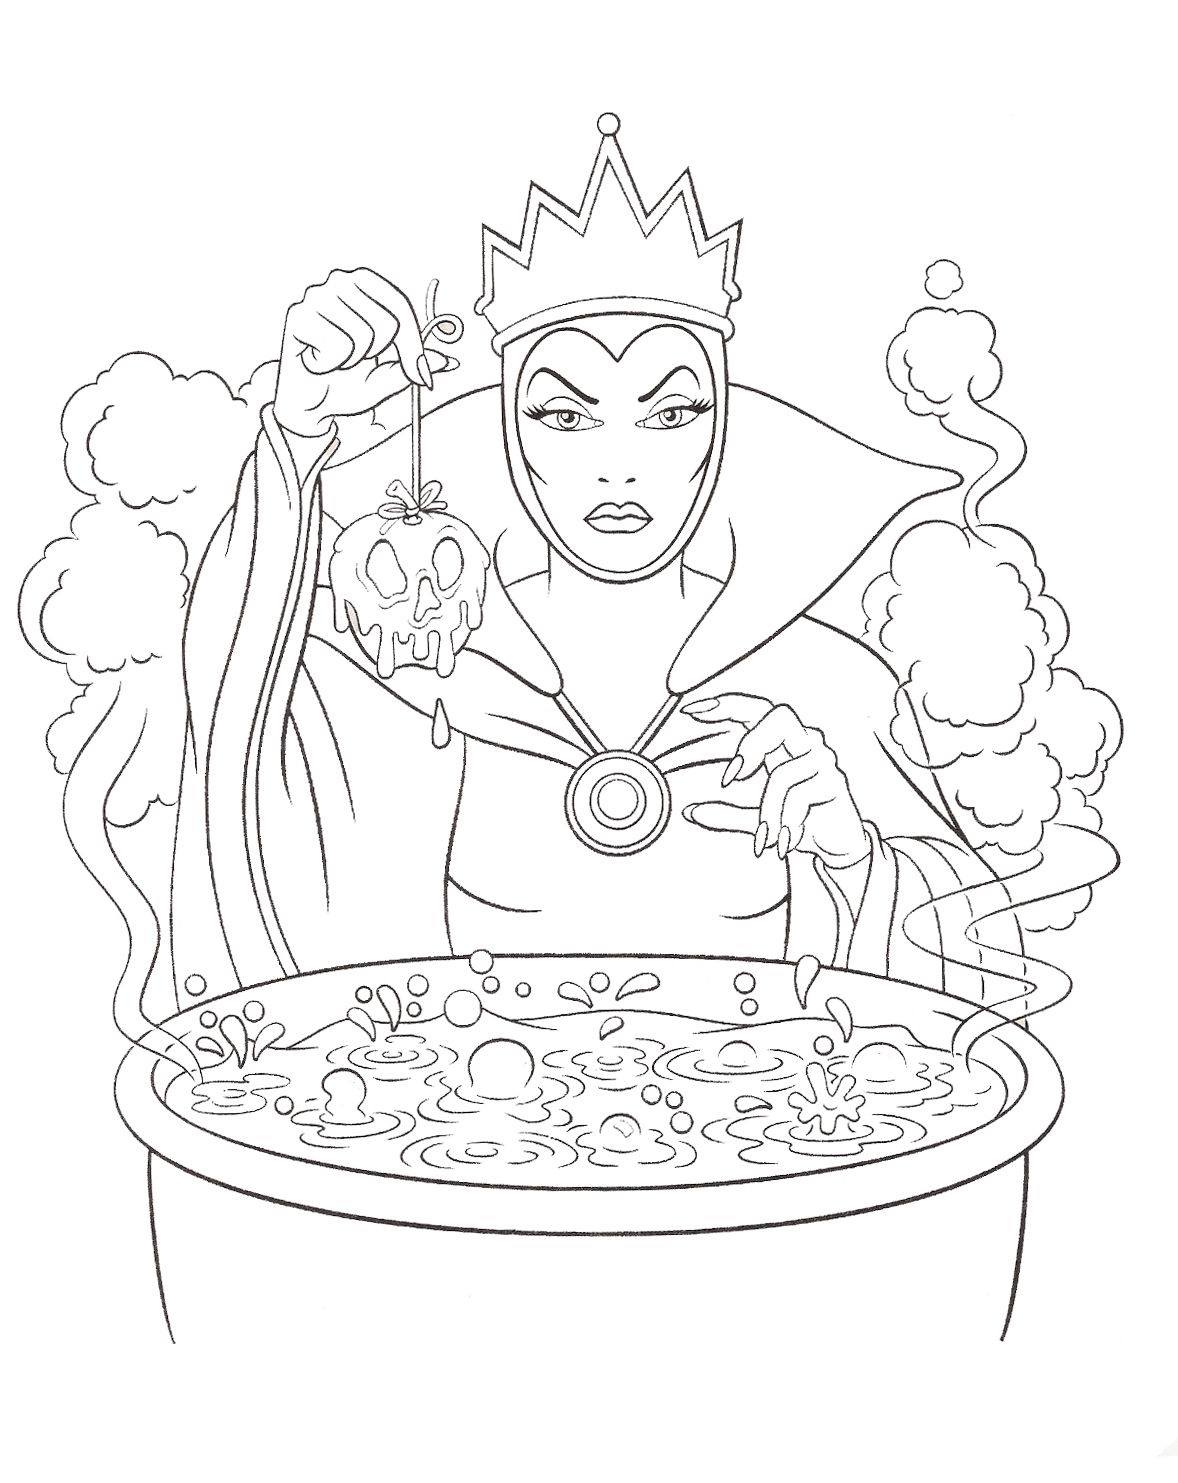 http://cdn.colorsofpictures.com/Coloring/the-evil-queen/the-evil ...